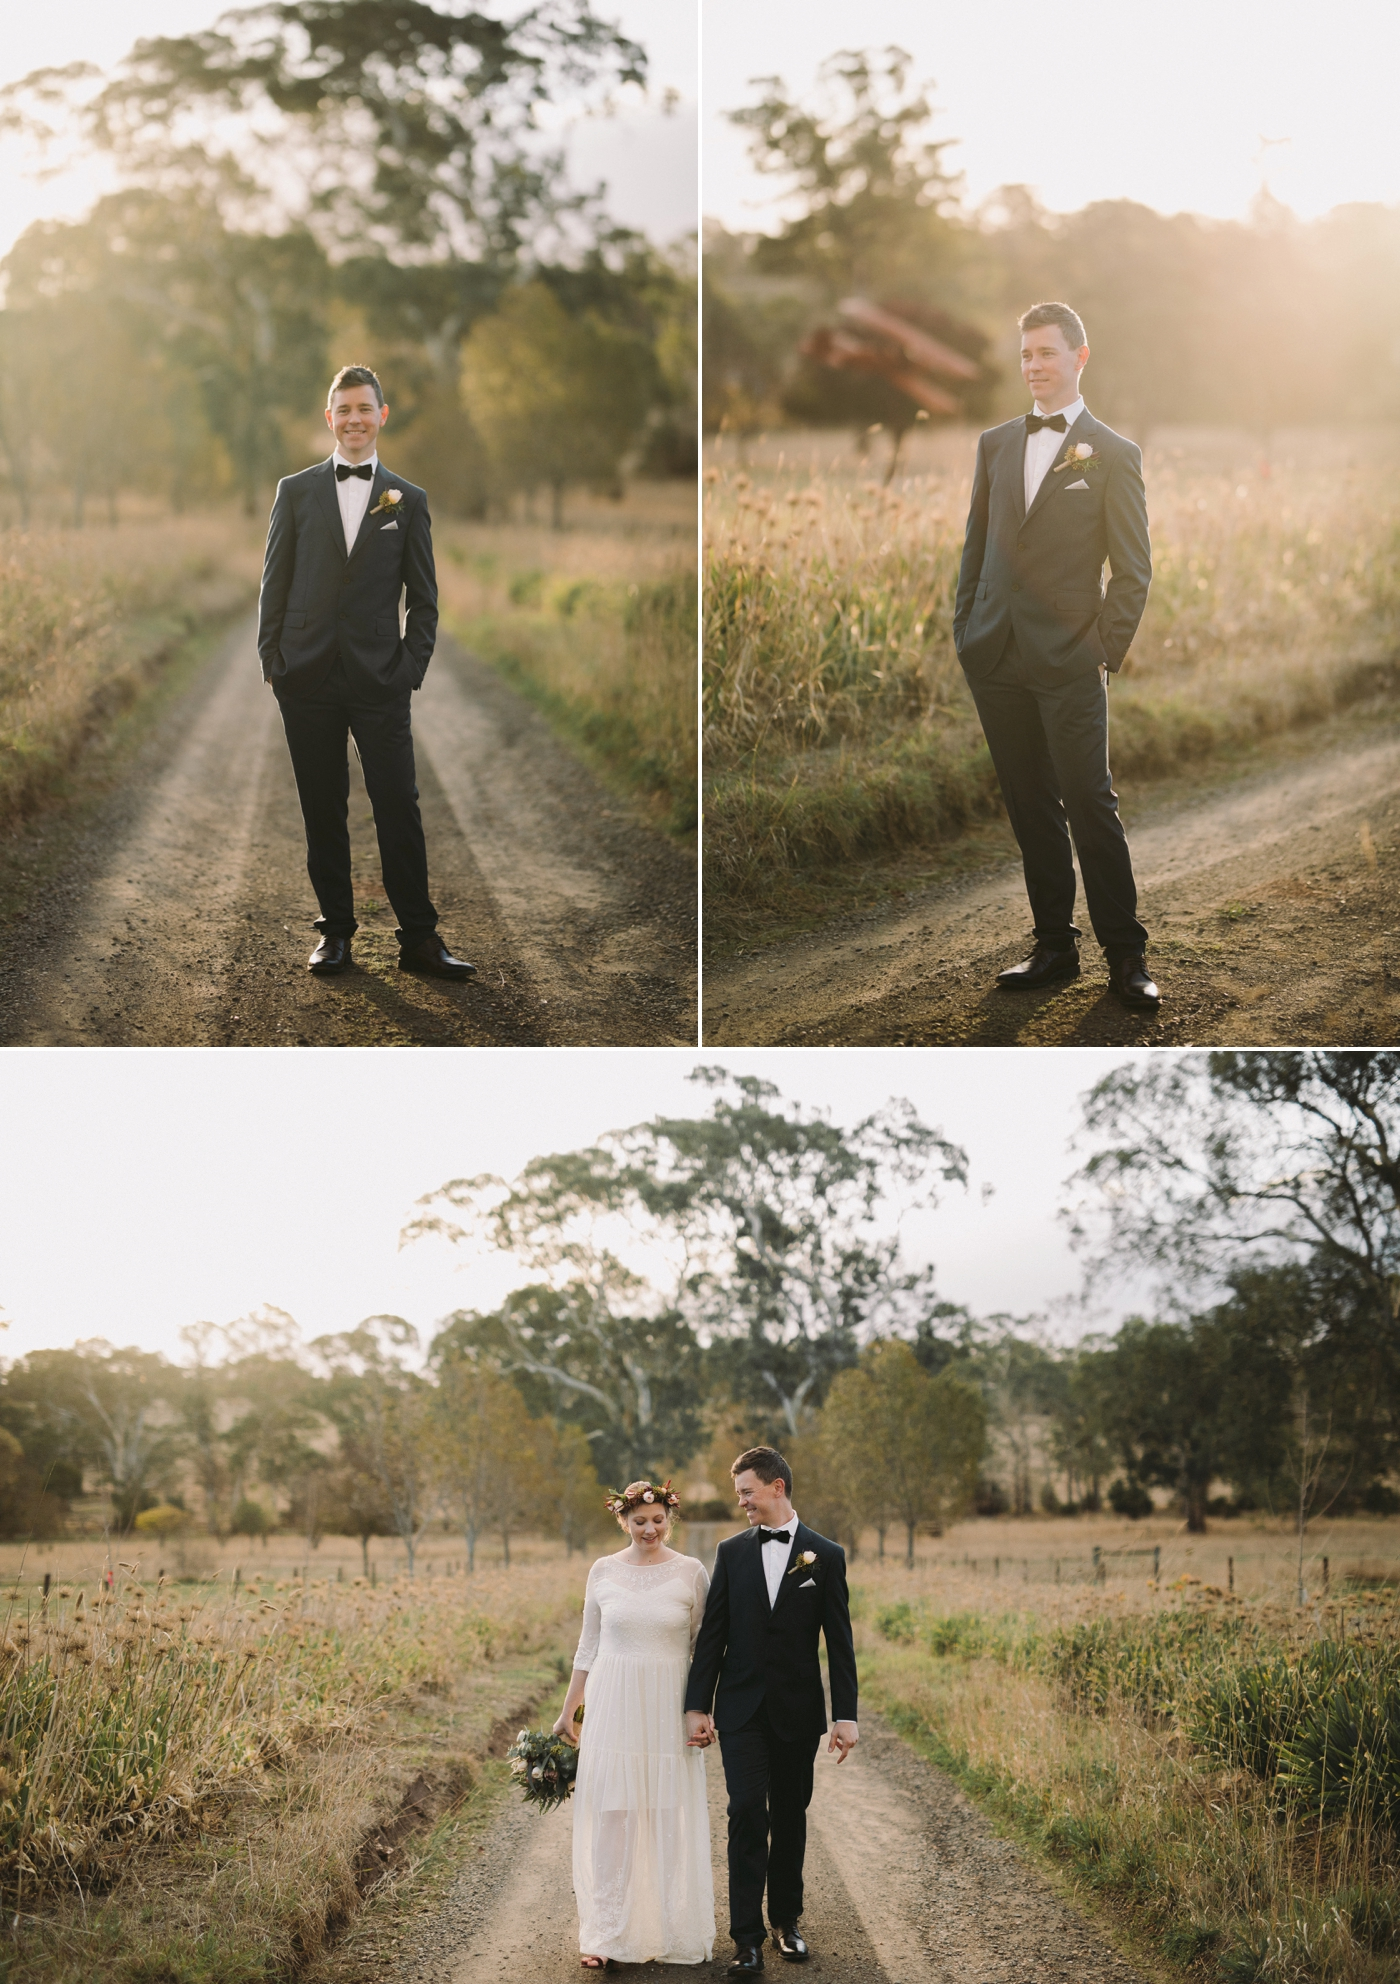 Jo & Aaron - Natural Wedding Photography in Adelaide - Beautiful, modern wedding photographer - Al Ru Farm Wedding Photography - Katherine Schultz_0033.jpg